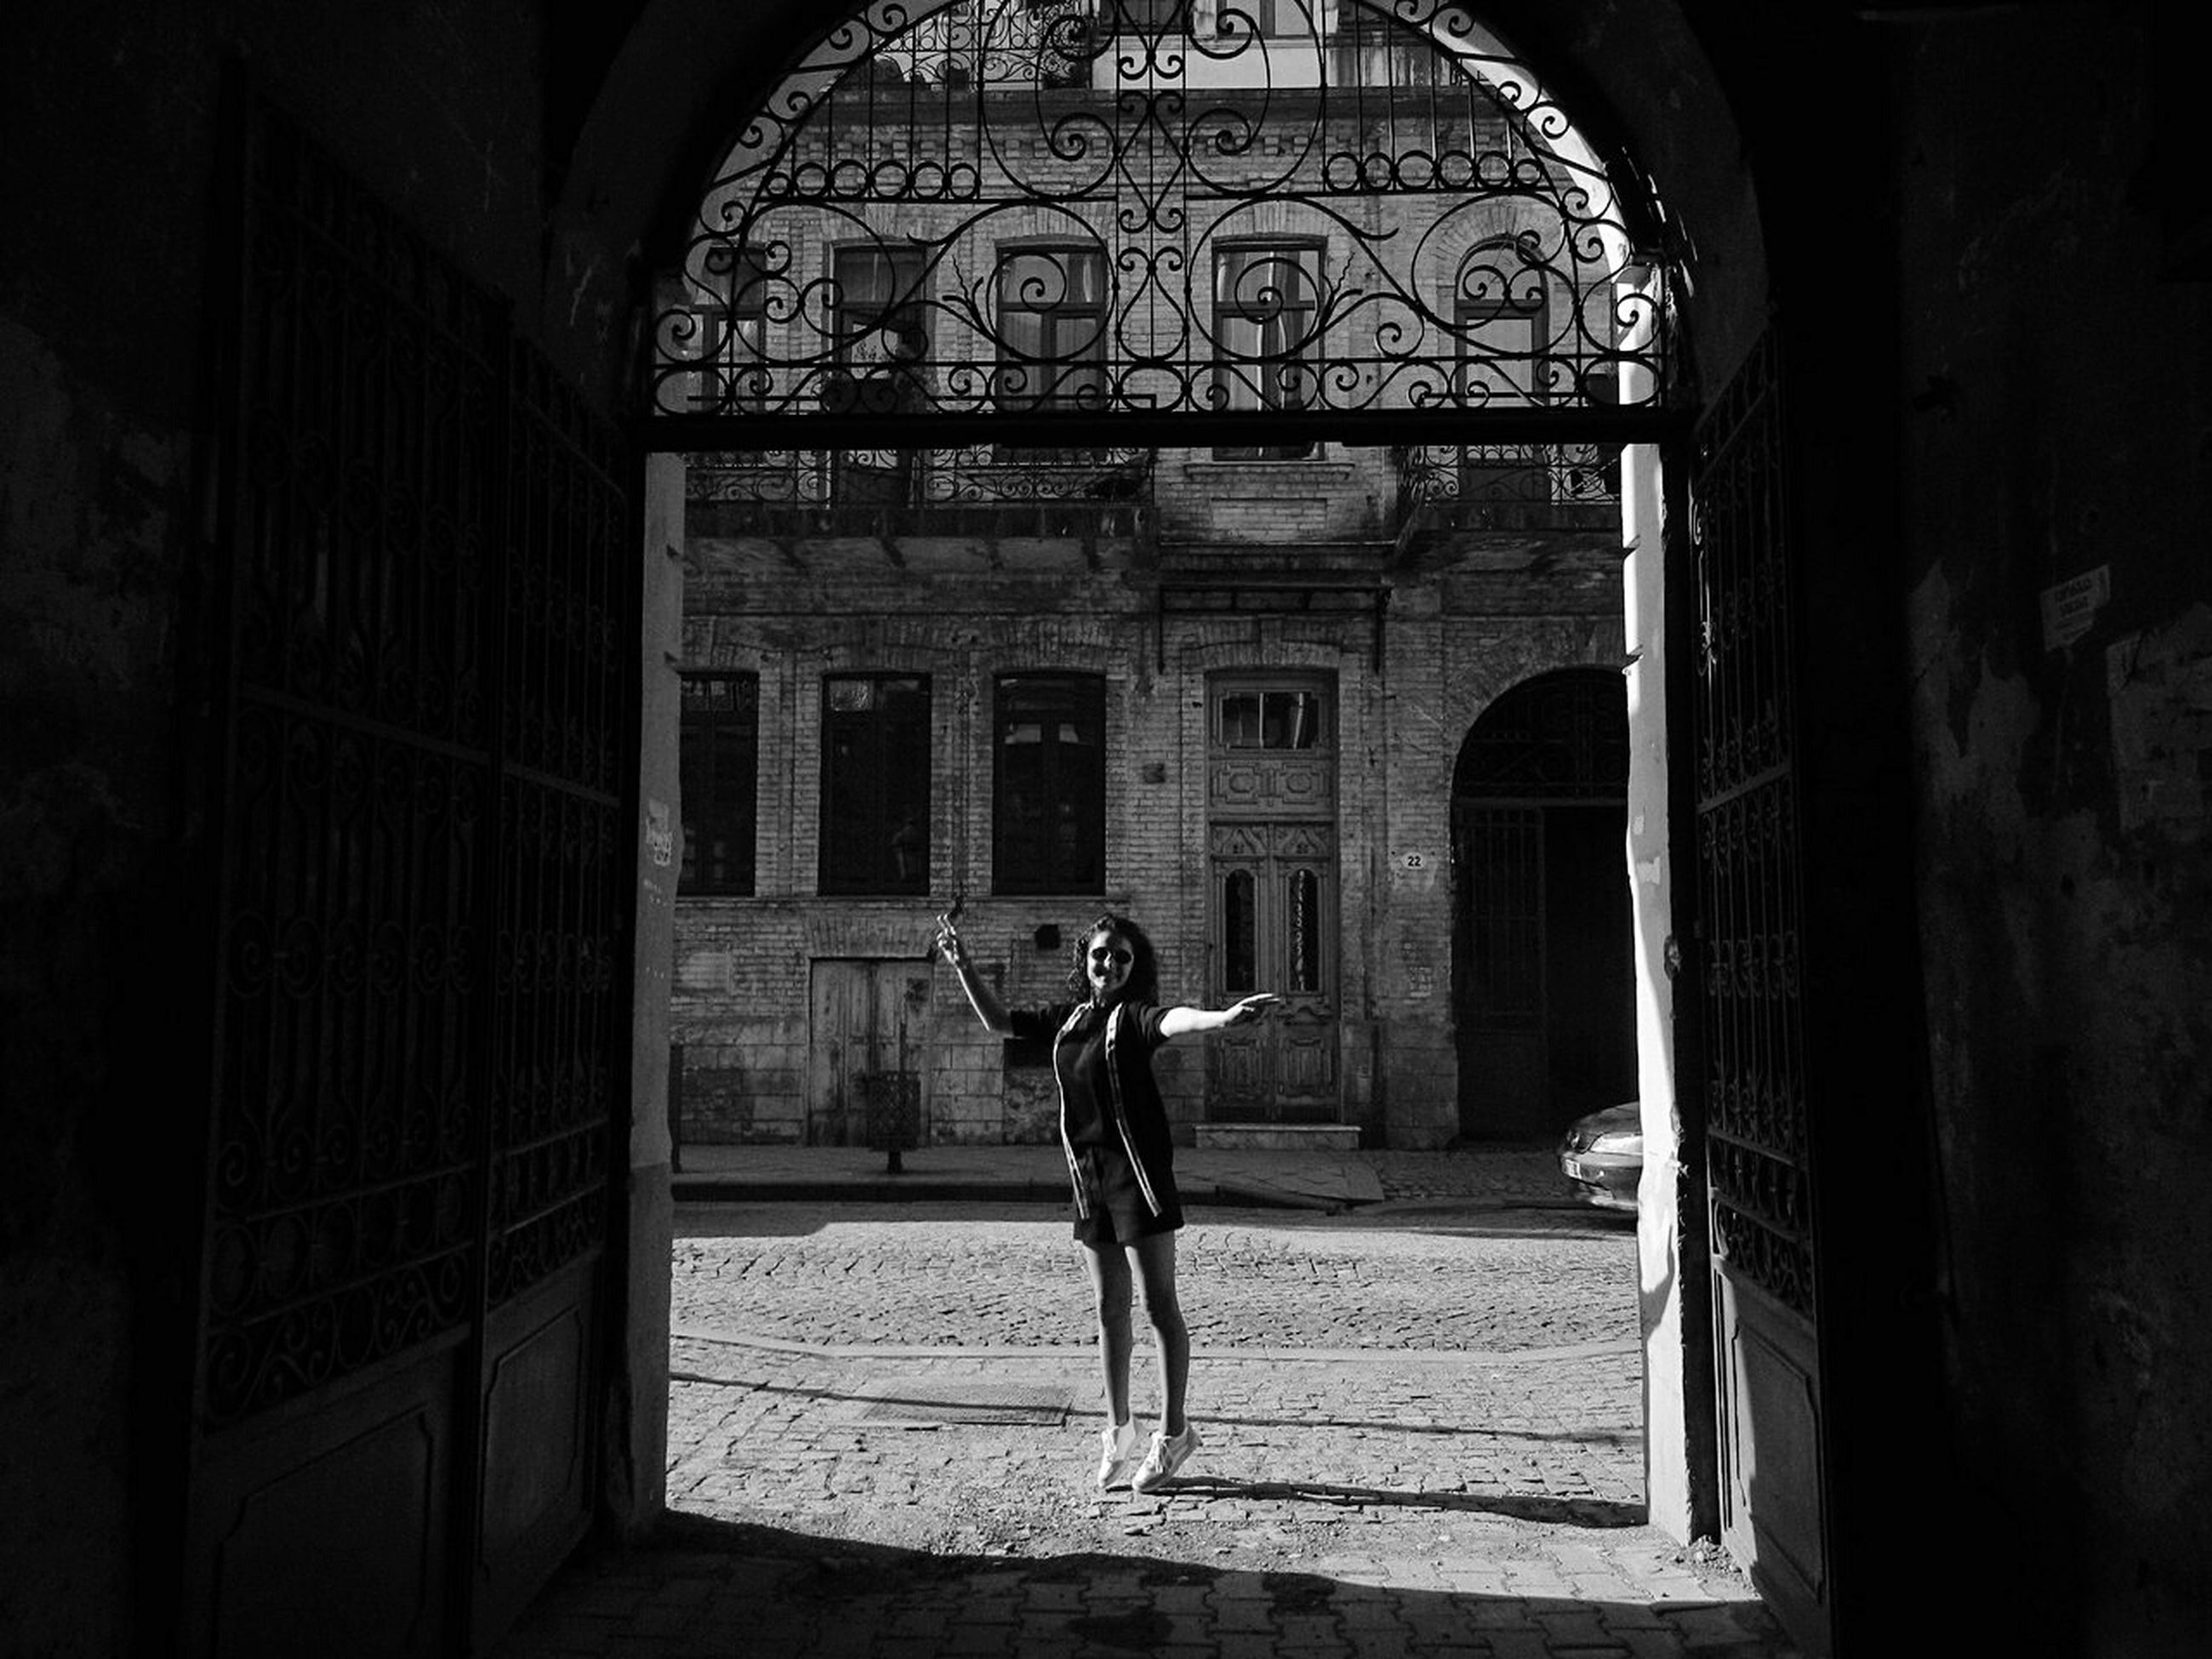 architecture, built structure, real people, one person, lifestyles, full length, building, building exterior, leisure activity, the past, history, arch, day, standing, men, tourism, old, women, architectural column, deterioration